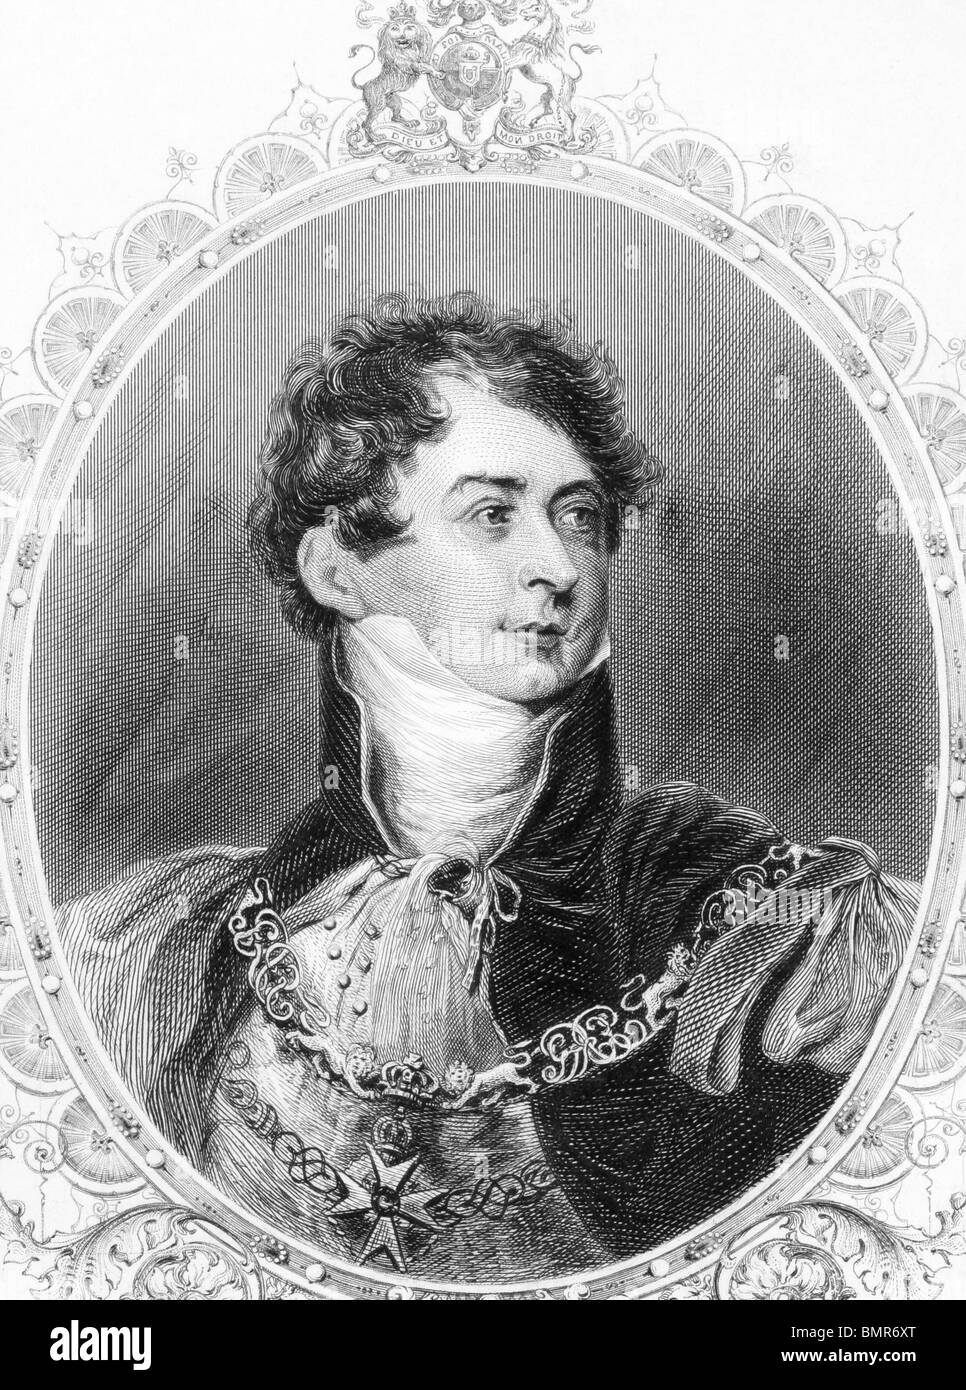 George IV (1762-1830) on engraving from the 1800s. King of Great Britain during 1820-1830. - Stock Image